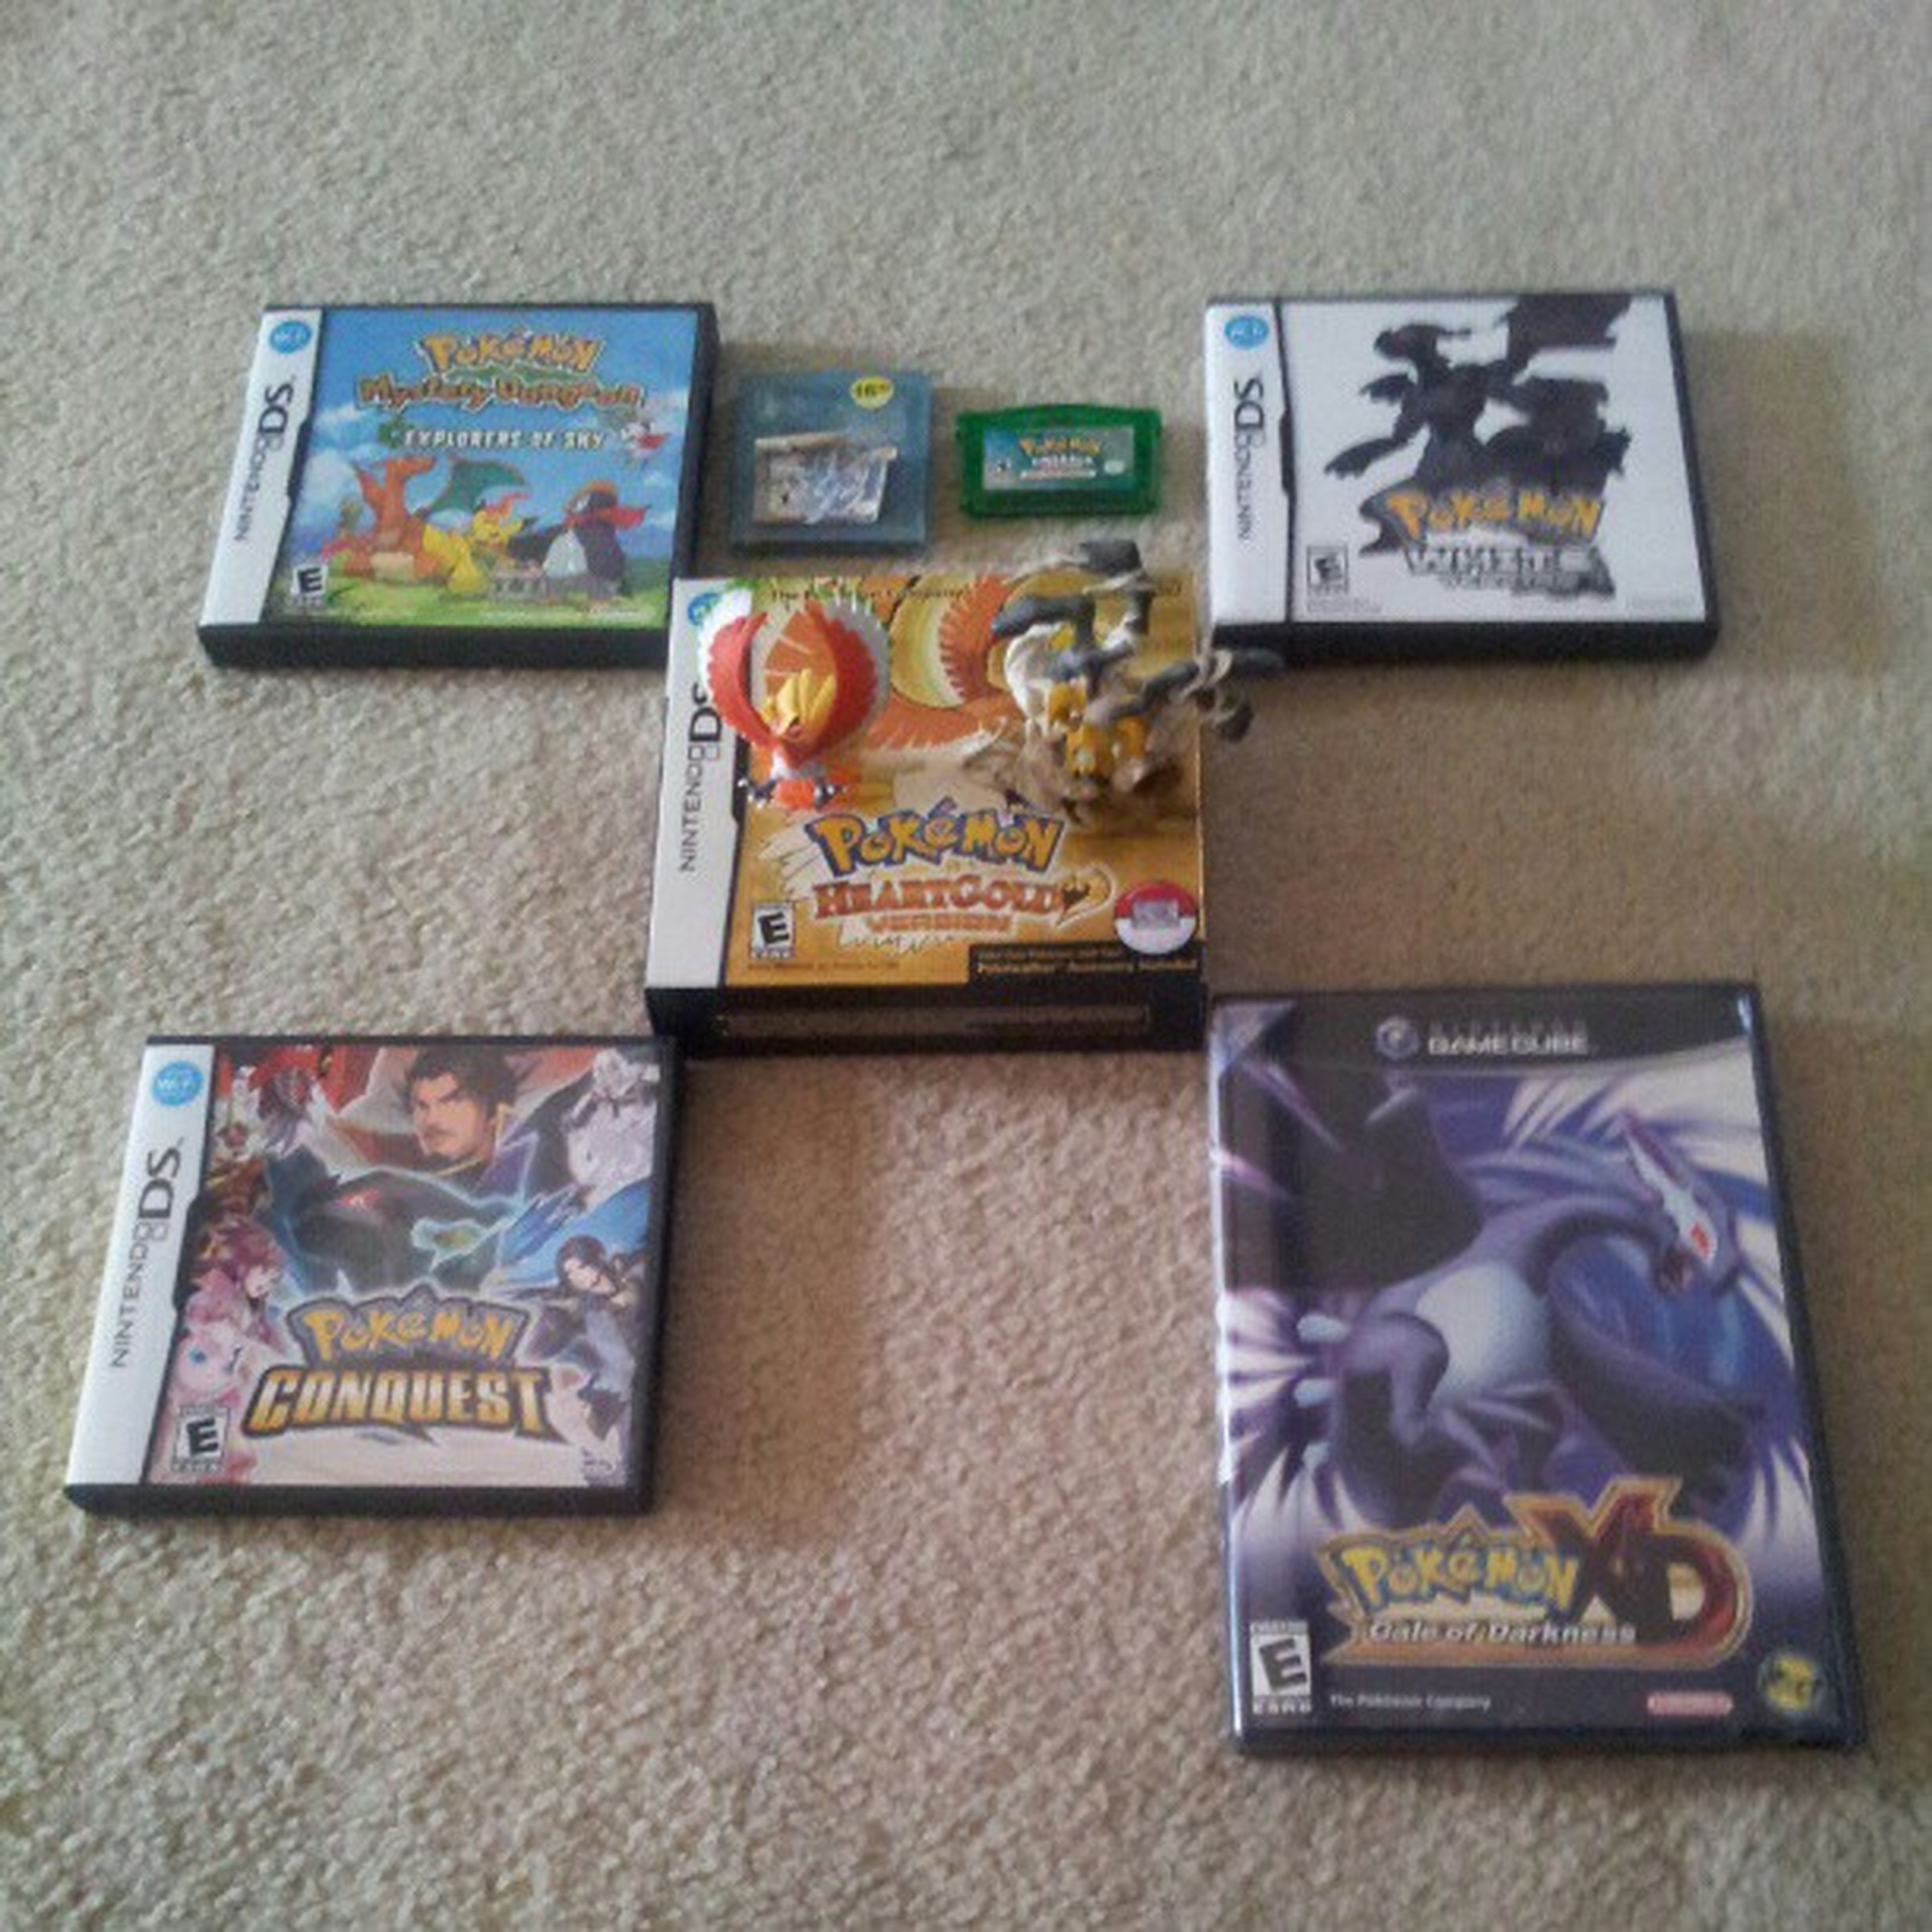 Lol yeah I know I'm a #pokemonnerd I just hate I haven't found Colosseum nor Red and Yellow #pokemon #pokemon #pokemonfan #heartgold #pokemonconquest #pokemoncollection #pokemonXDgaleofdarkness #pokemonwhite #pokemonemerald #pokemoncrystal #ho-oh #giratin Pokemoncollection Pokemonemerald Pokemonconquest Heartgold Pokémon Pokemonnerd Giratina Pokemonfan Pokemonwhite Pokemonxdgaleofdarkness Pokemoncrystal Ho